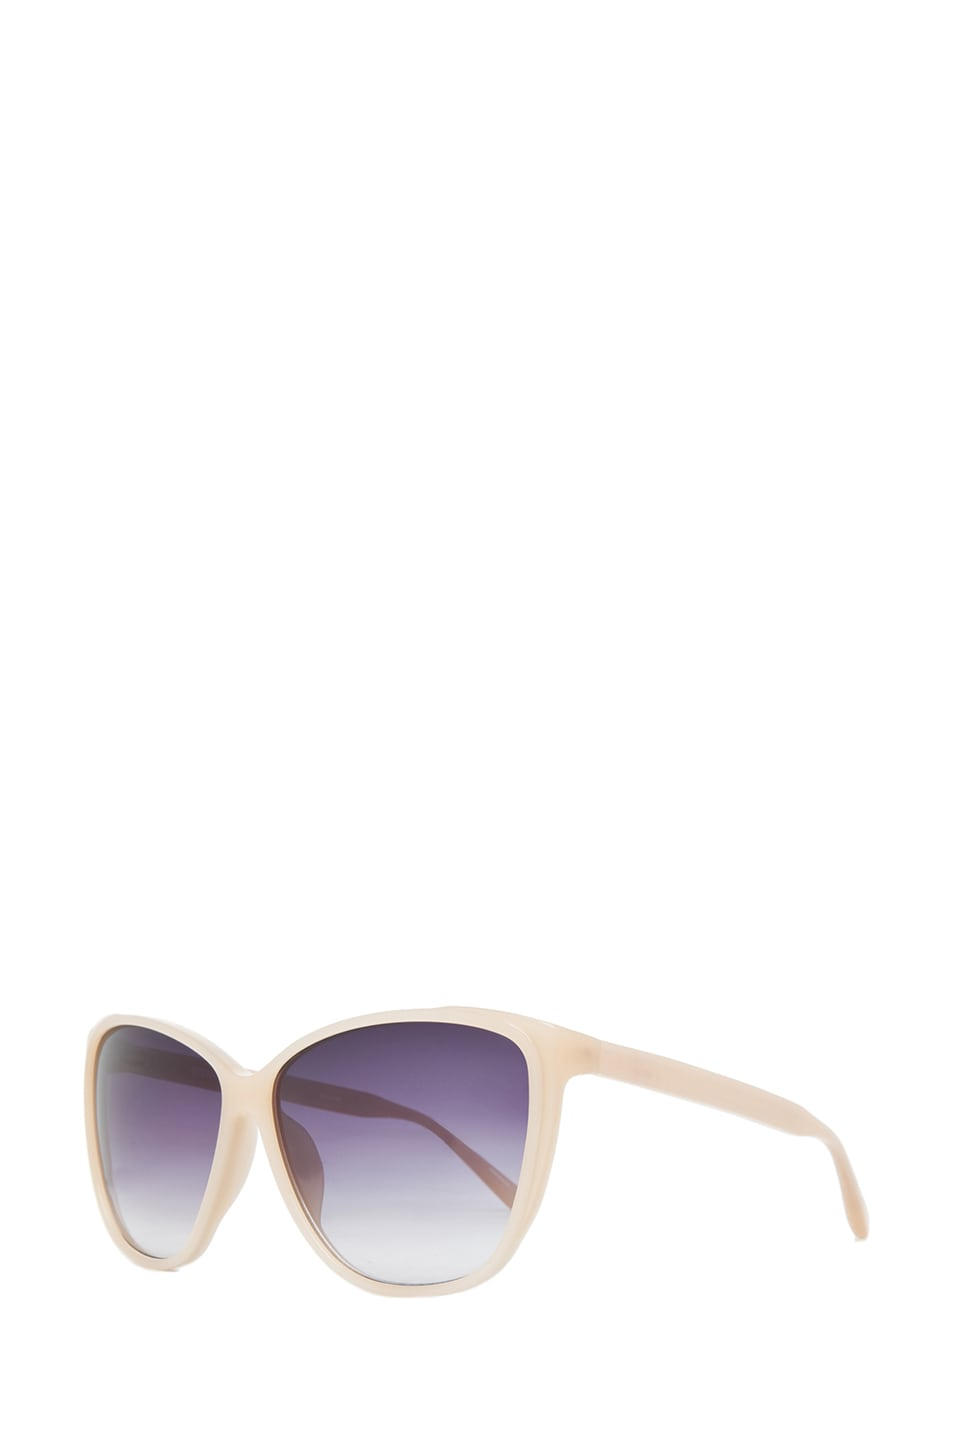 Image 2 of Matthew Williamson Cat Eye Sunglasses in Milky Peach